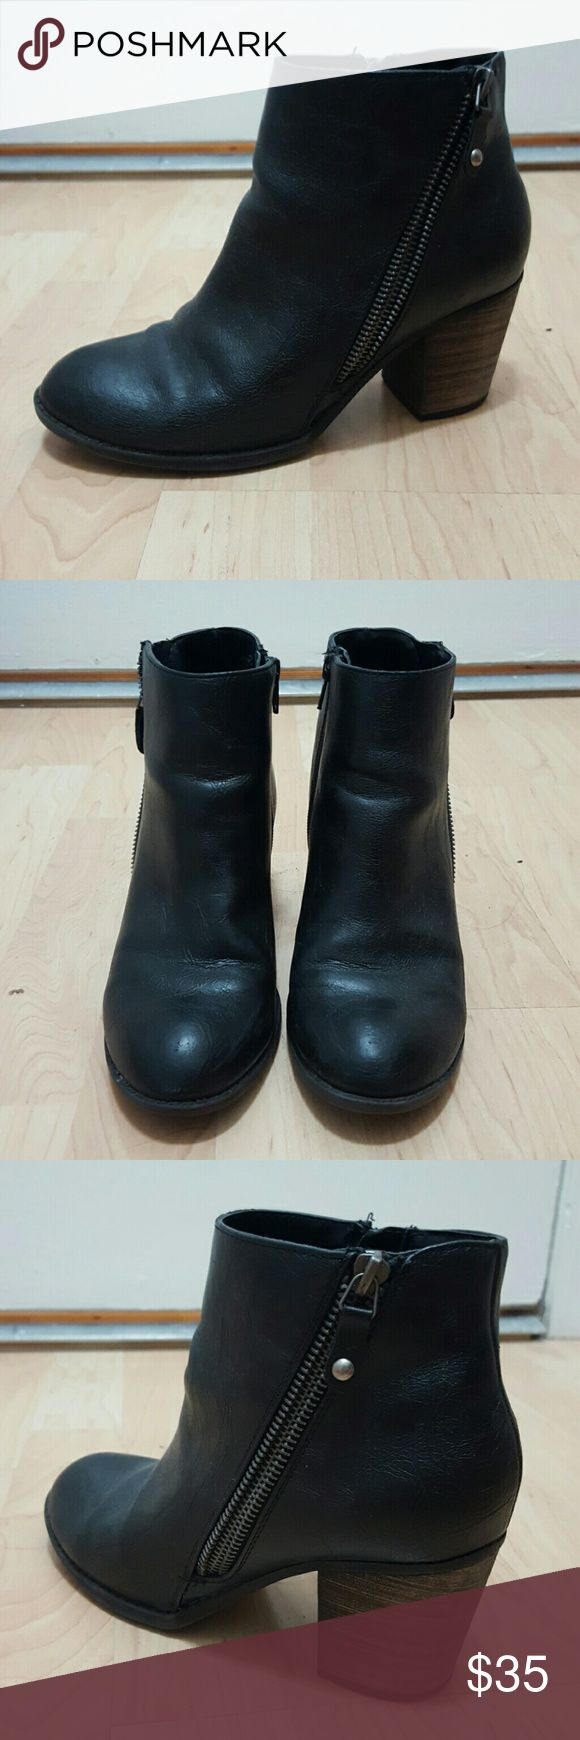 Diba Pilot Bootie Black booties with zipper detail on outside. Very good condition! Worn for less than a year Diba Shoes Ankle Boots & Booties